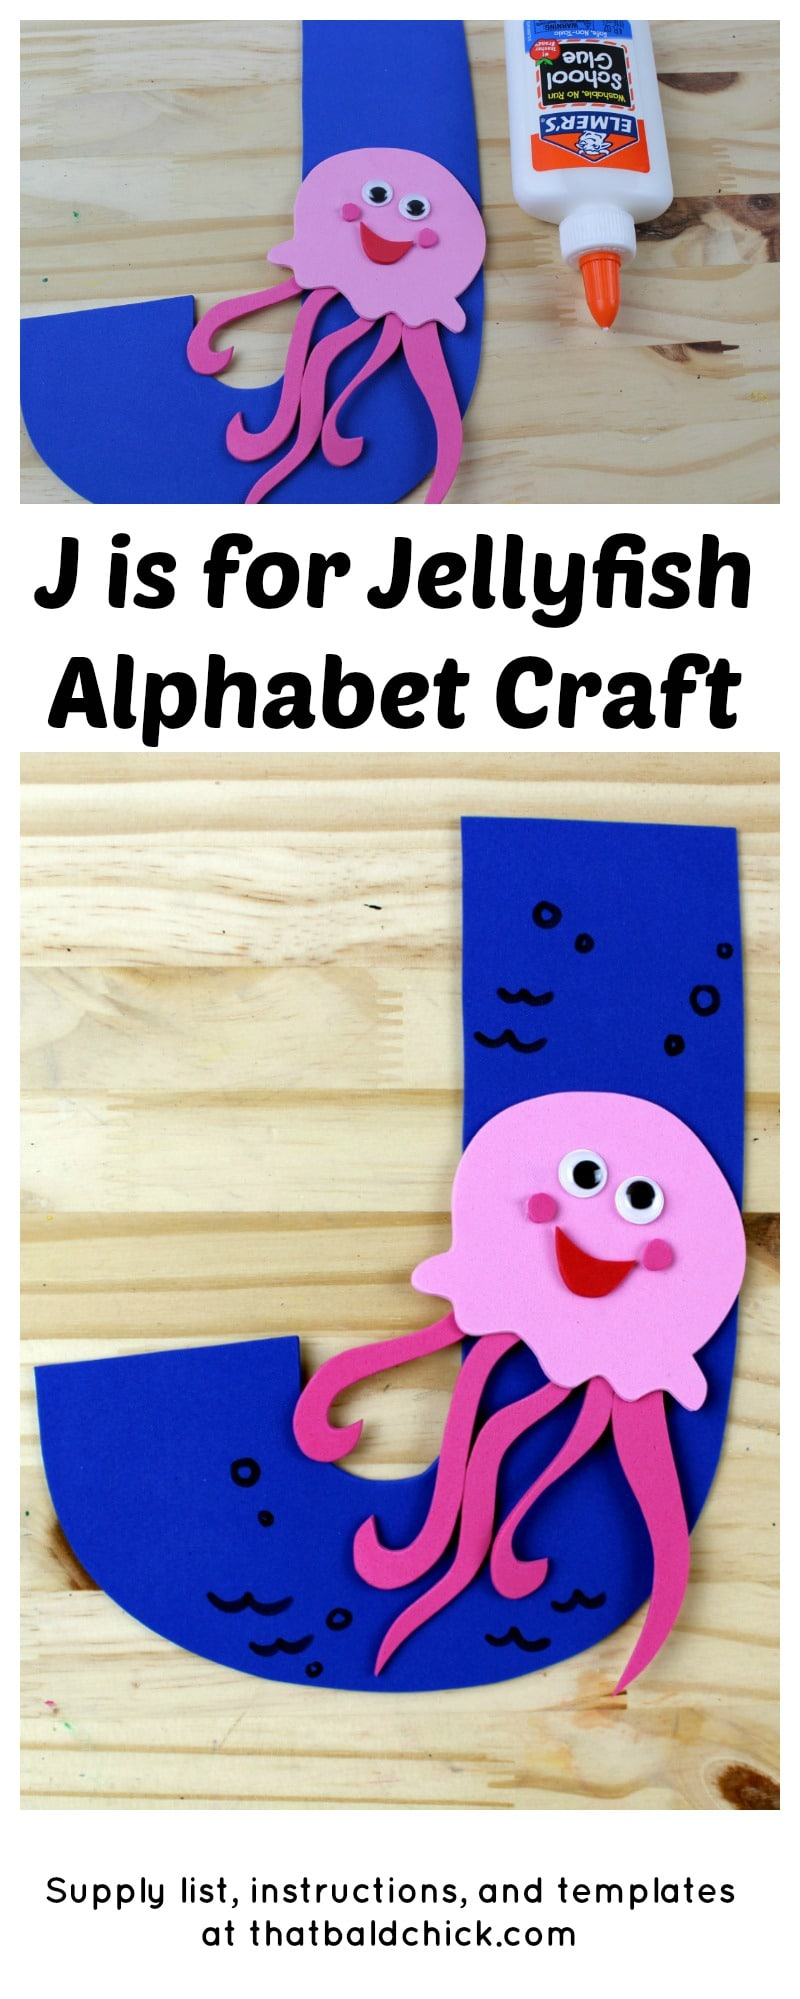 J is for Jellyfish Alphabet Craft - supply list, instructions, and templates at thatbaldchick.com